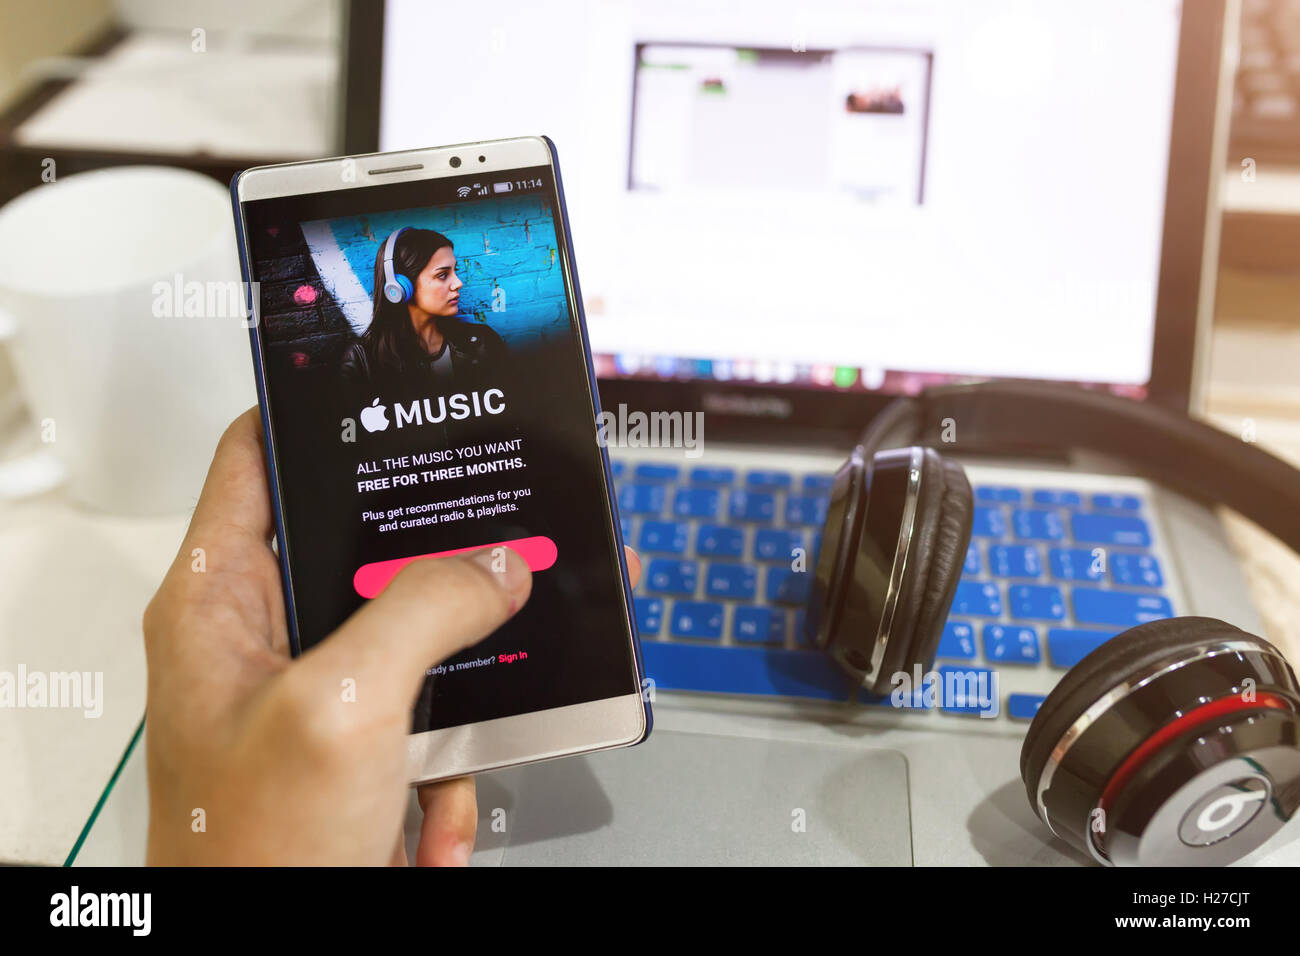 CHIANG MAI,THAILAND - Sept 25,2016: A man hand holding screen shot of Apple music app showing on Android. Apple Stock Photo